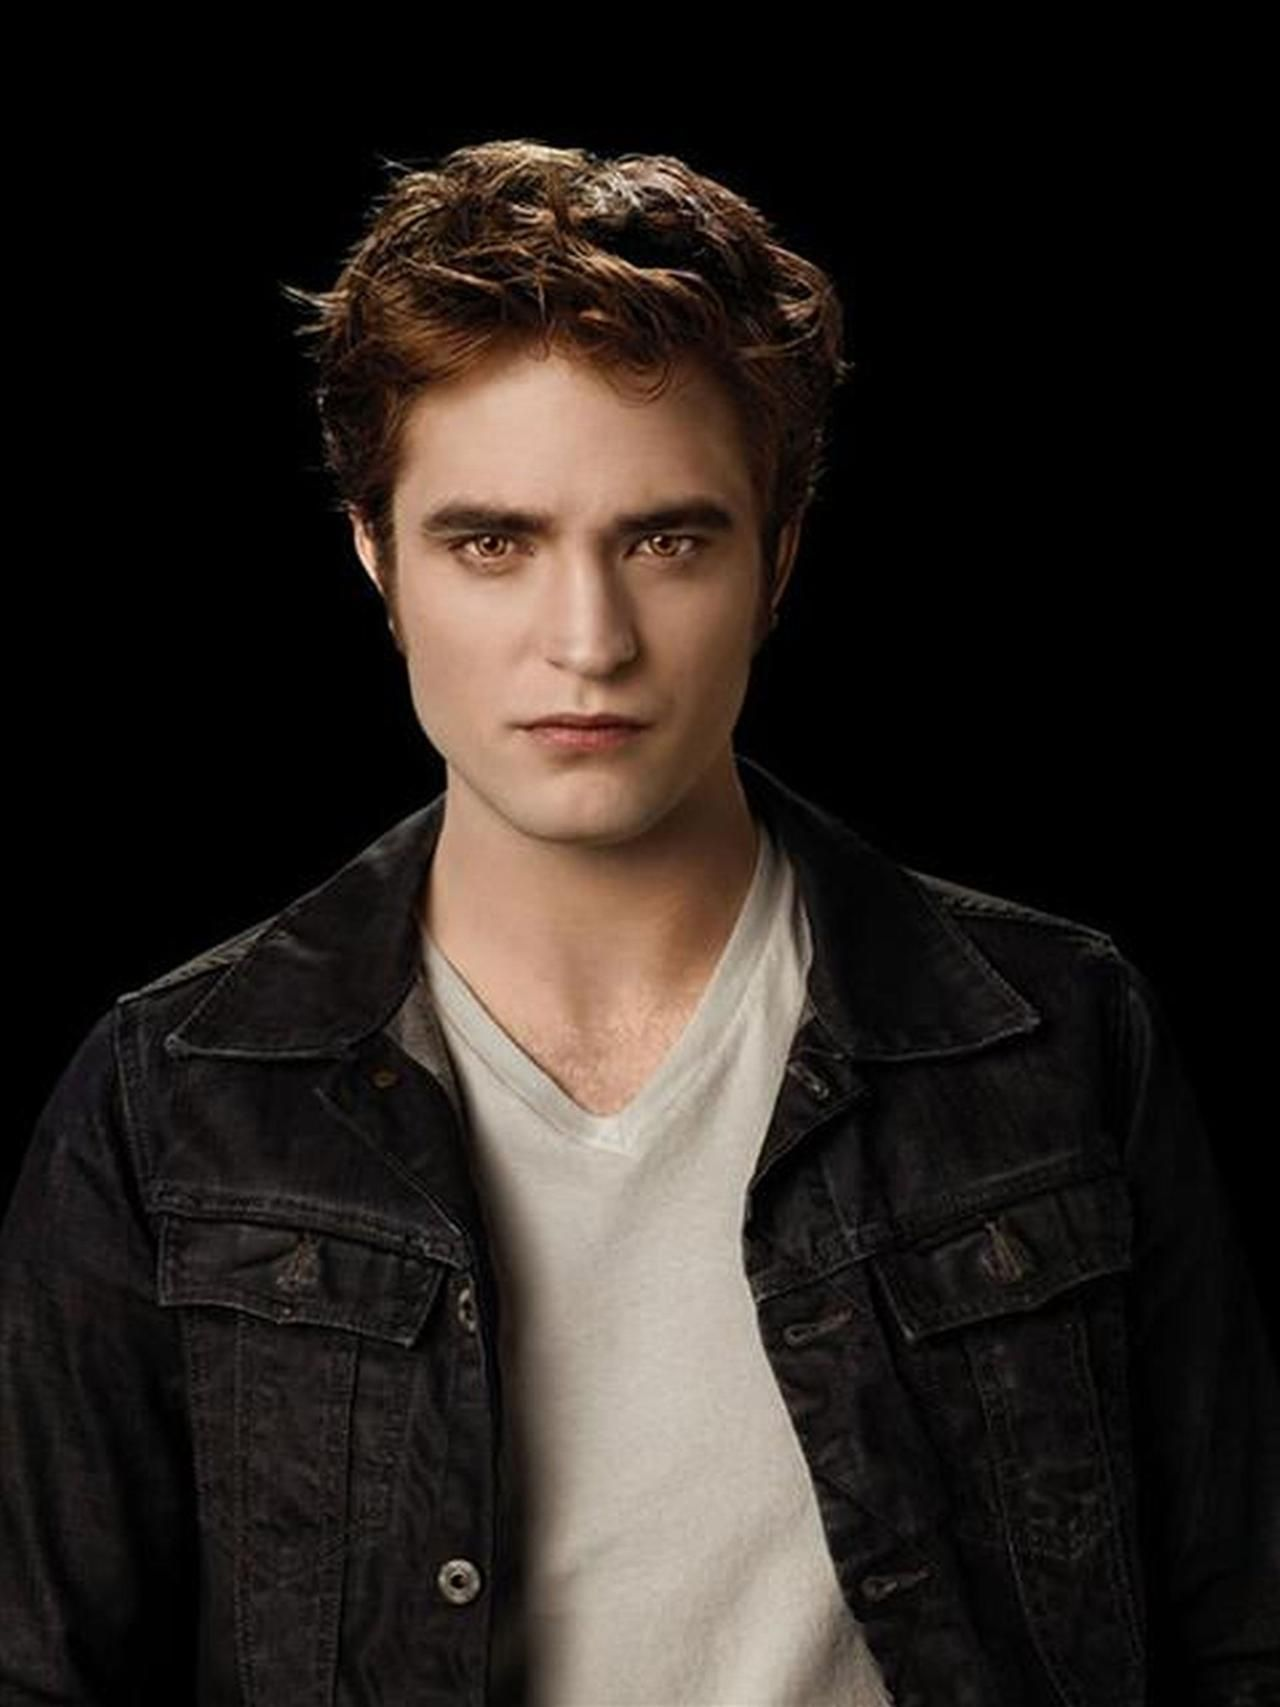 Twilight Quiz: How Well Do You Know Edward Cullen? - Fame10